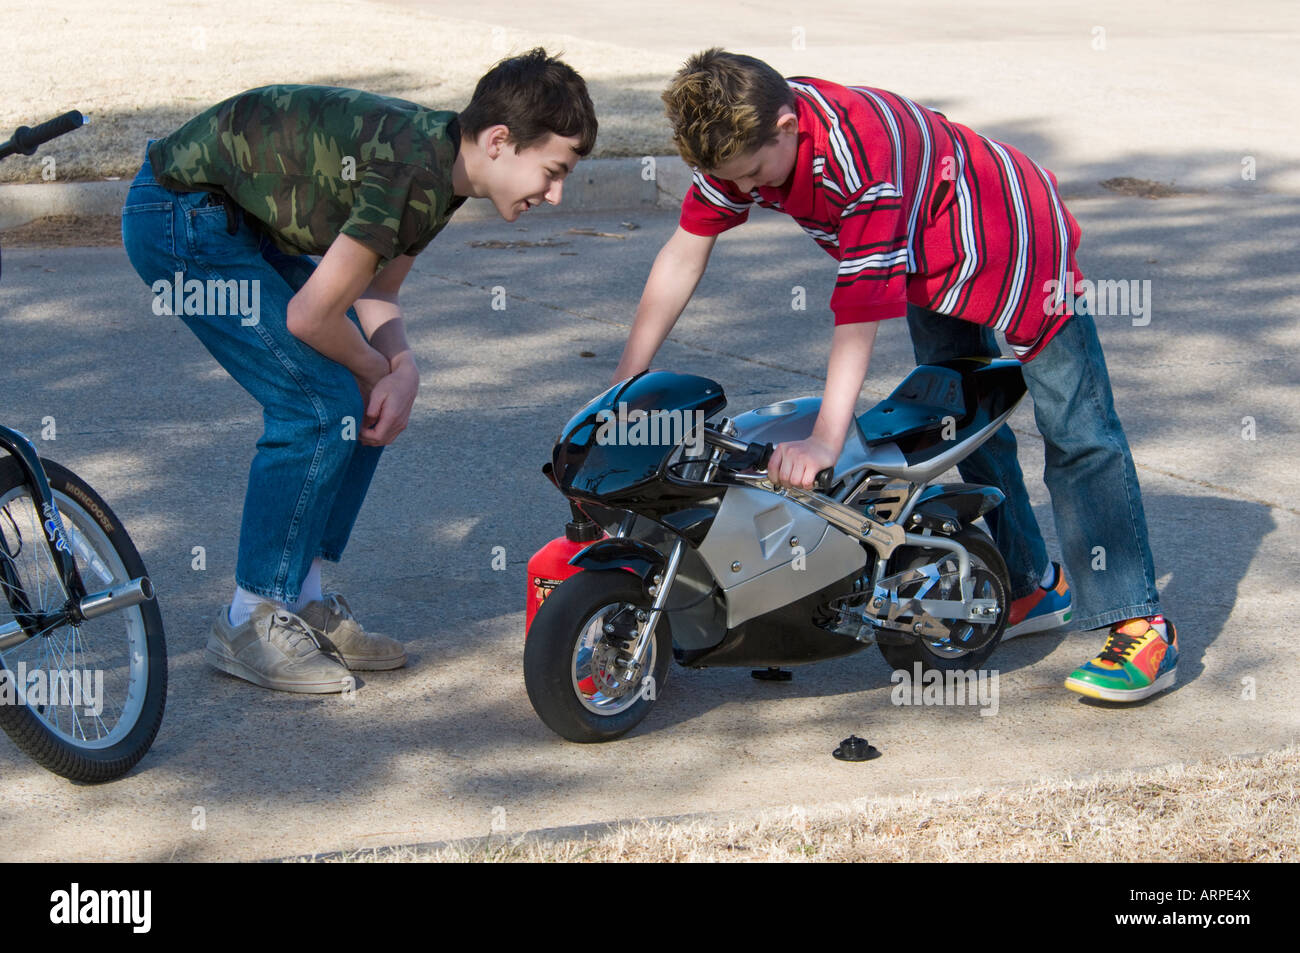 Two teenage boys study a motorized pocket bike that has quit running. - Stock Image